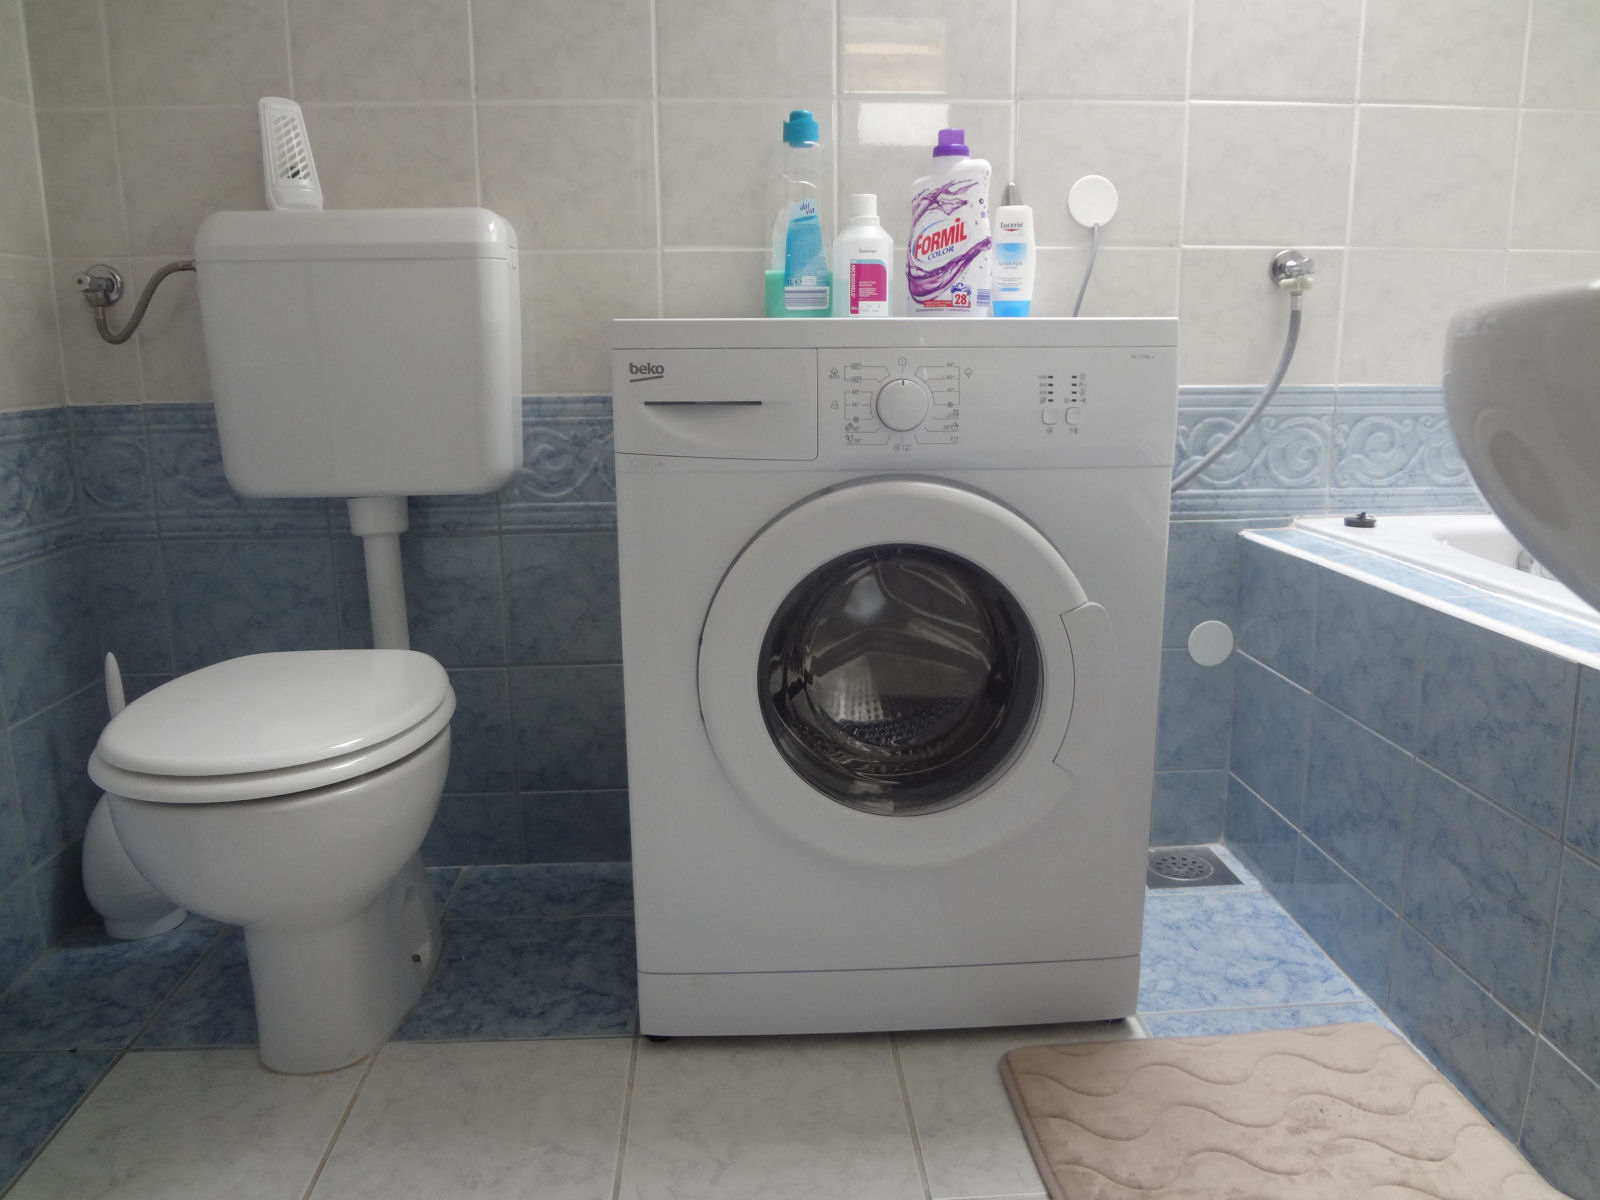 Awesome apartment washing machine images home design for Small bathroom designs with washing machine